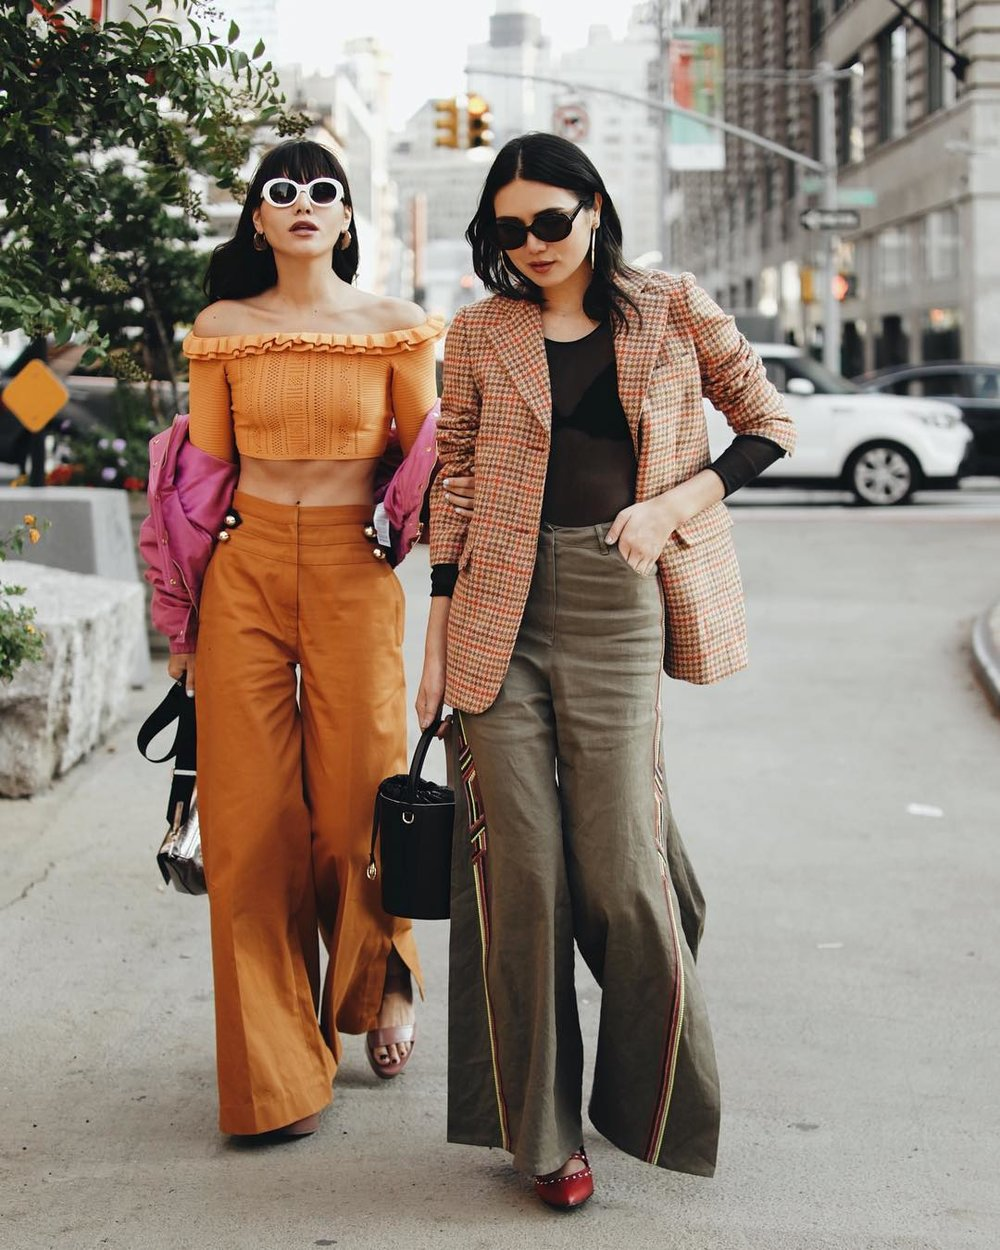 Suarez sisters, Natalie and Dylan rocking interesting looks during NYFW.